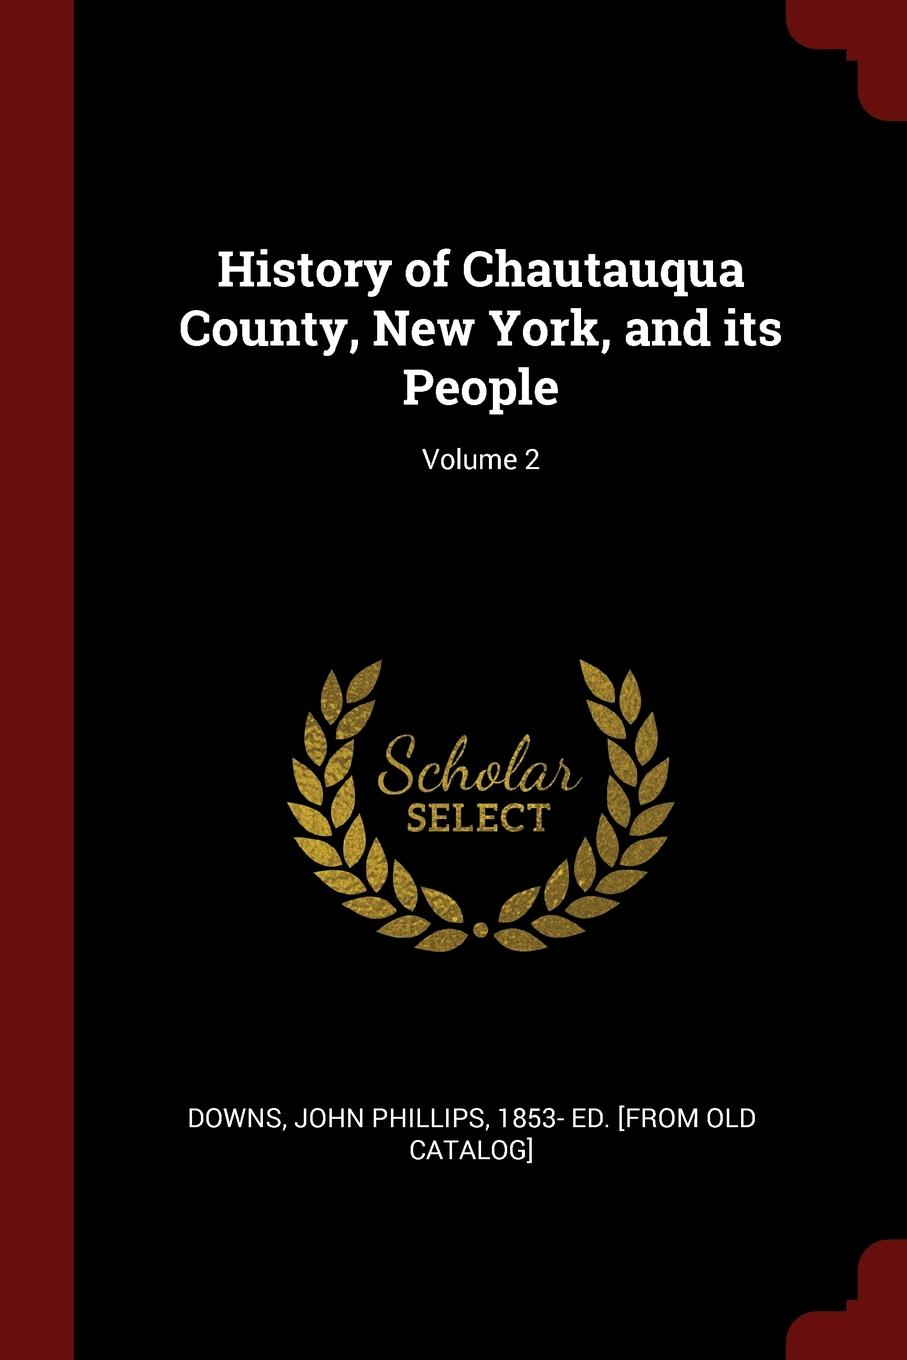 History of Chautauqua County, New York, and its People; Volume 2